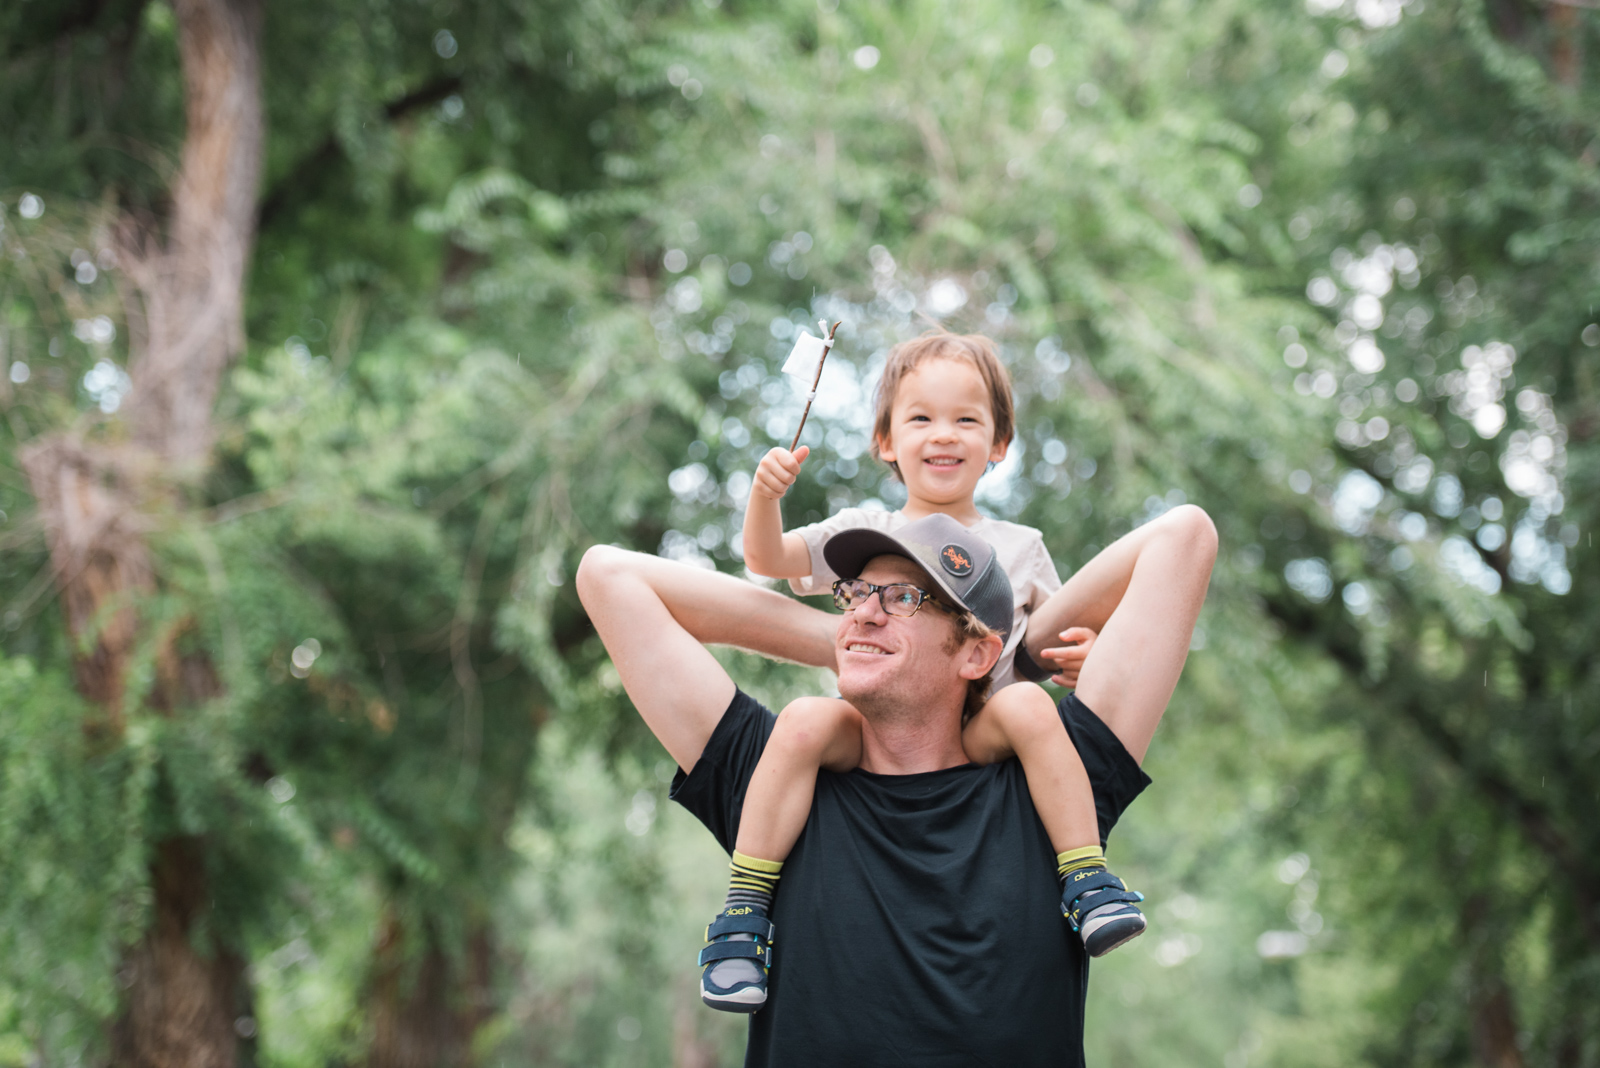 Crossing the finish line together starts young. (Co-founder JP with our little boy).